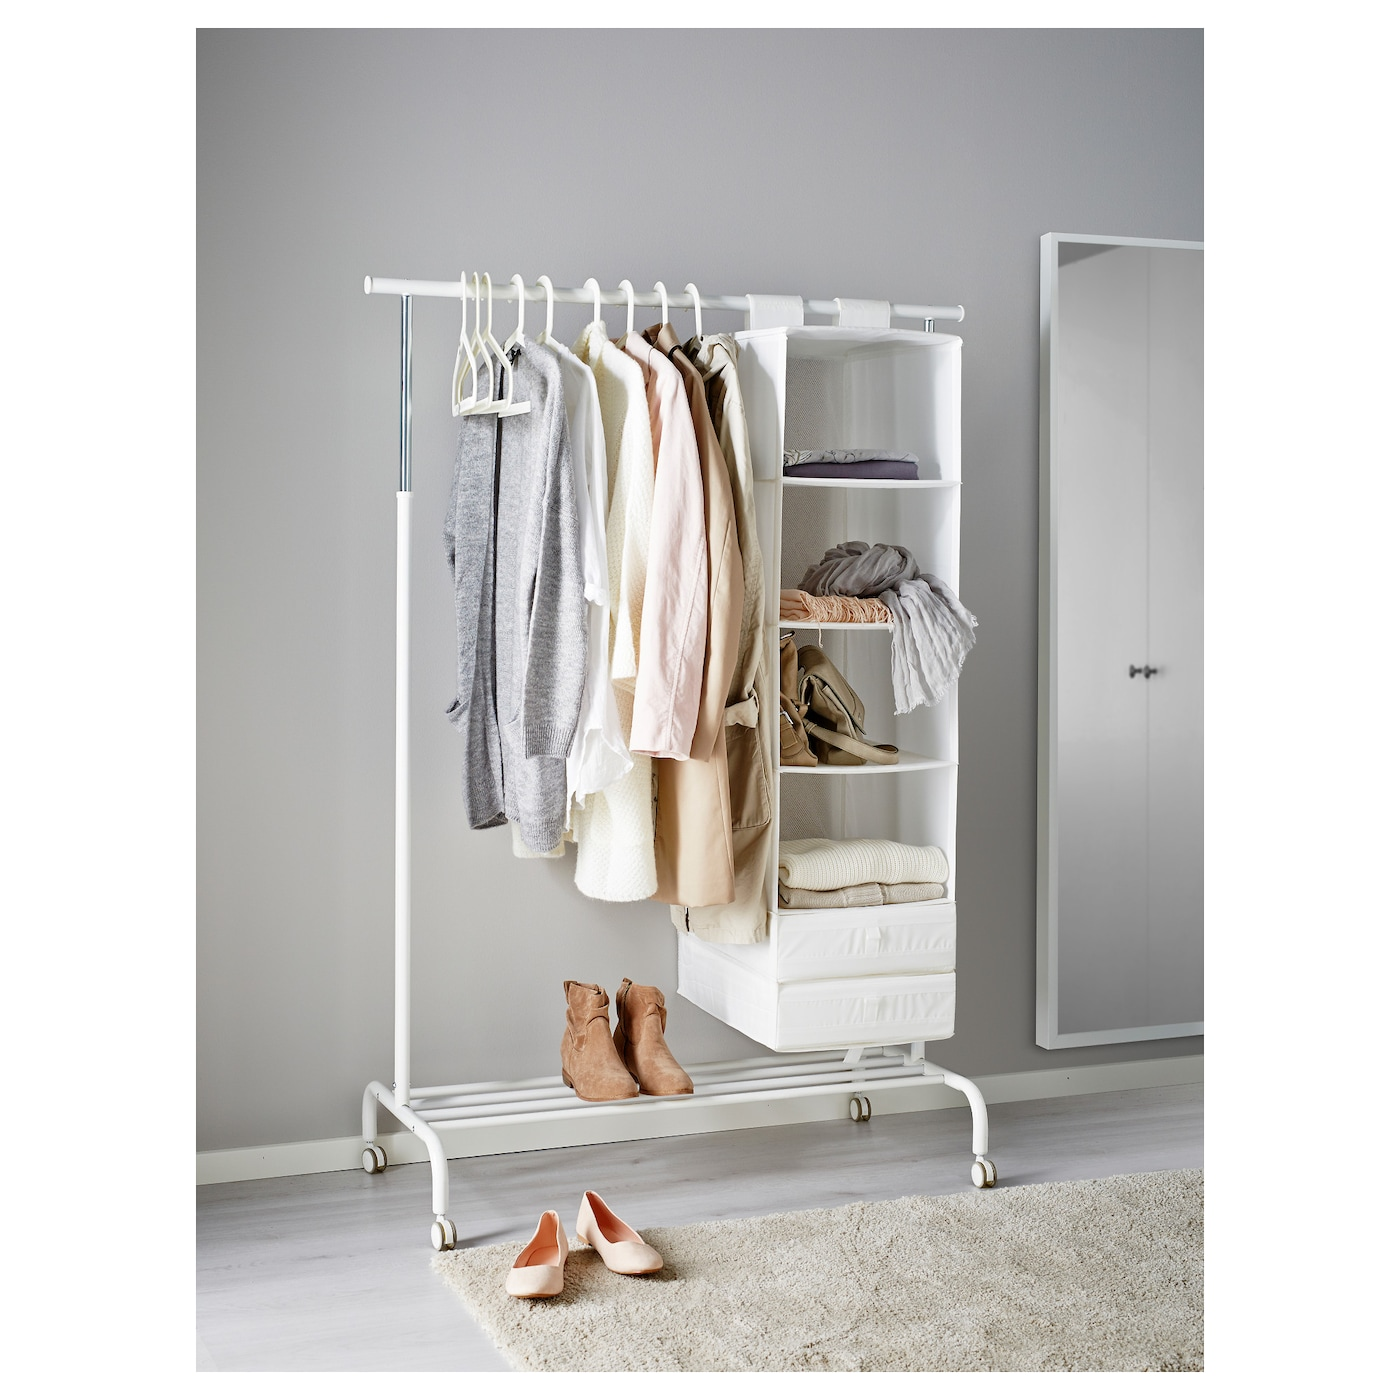 Ikea Rigga Clothes Rack There Is Room For Bo Or 4 Pairs Of Shoes On The